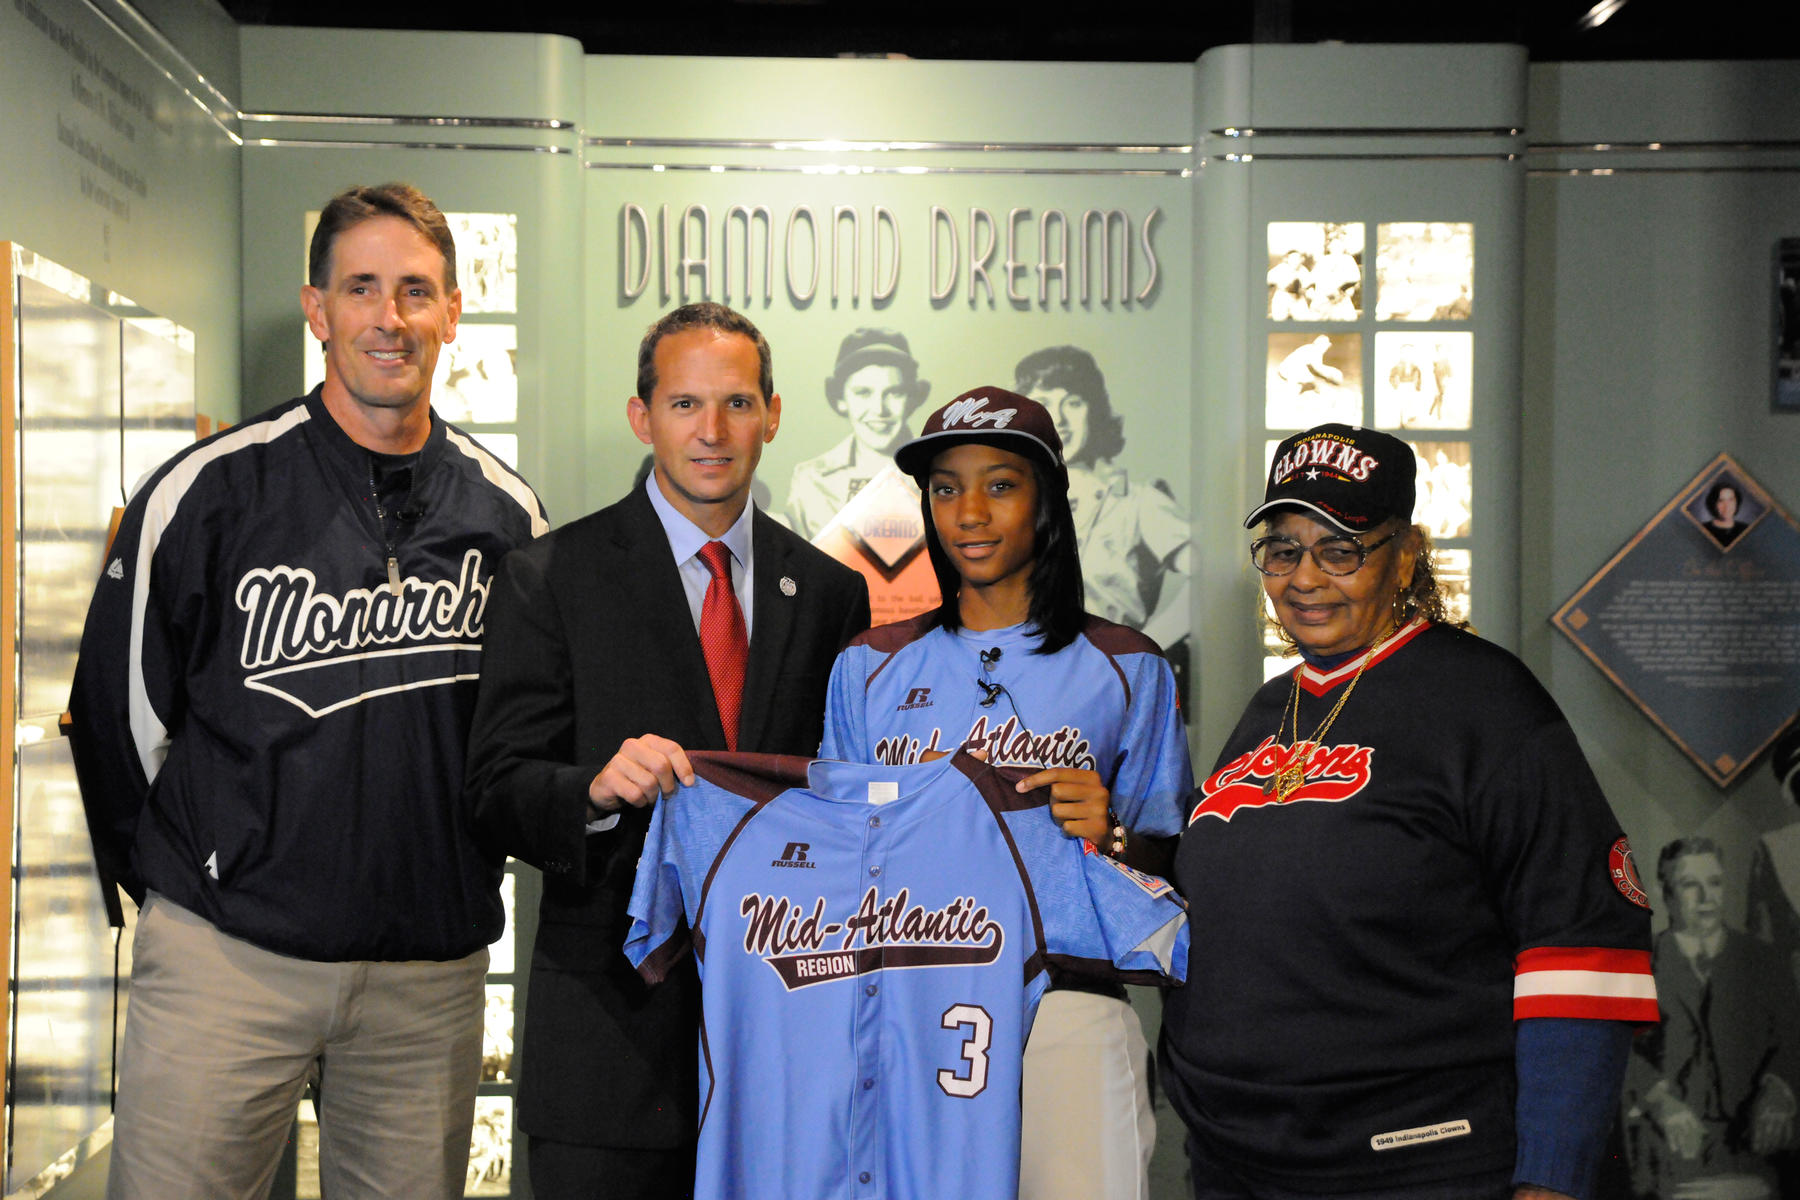 """Mo'ne Davis donated a jersey she wore at the 2014 Little League Baseball World Series. She is seen here with (left to right) Steve Bandura, founder/coach of the Anderson Monarchs, Hall of Fame President Jeff Idelson and Mamie """"Peanut"""" Johnson, one of just three women in play in the Negro Leagues. (Milo Stewart, Jr. / National Baseball Hall of Fame)"""